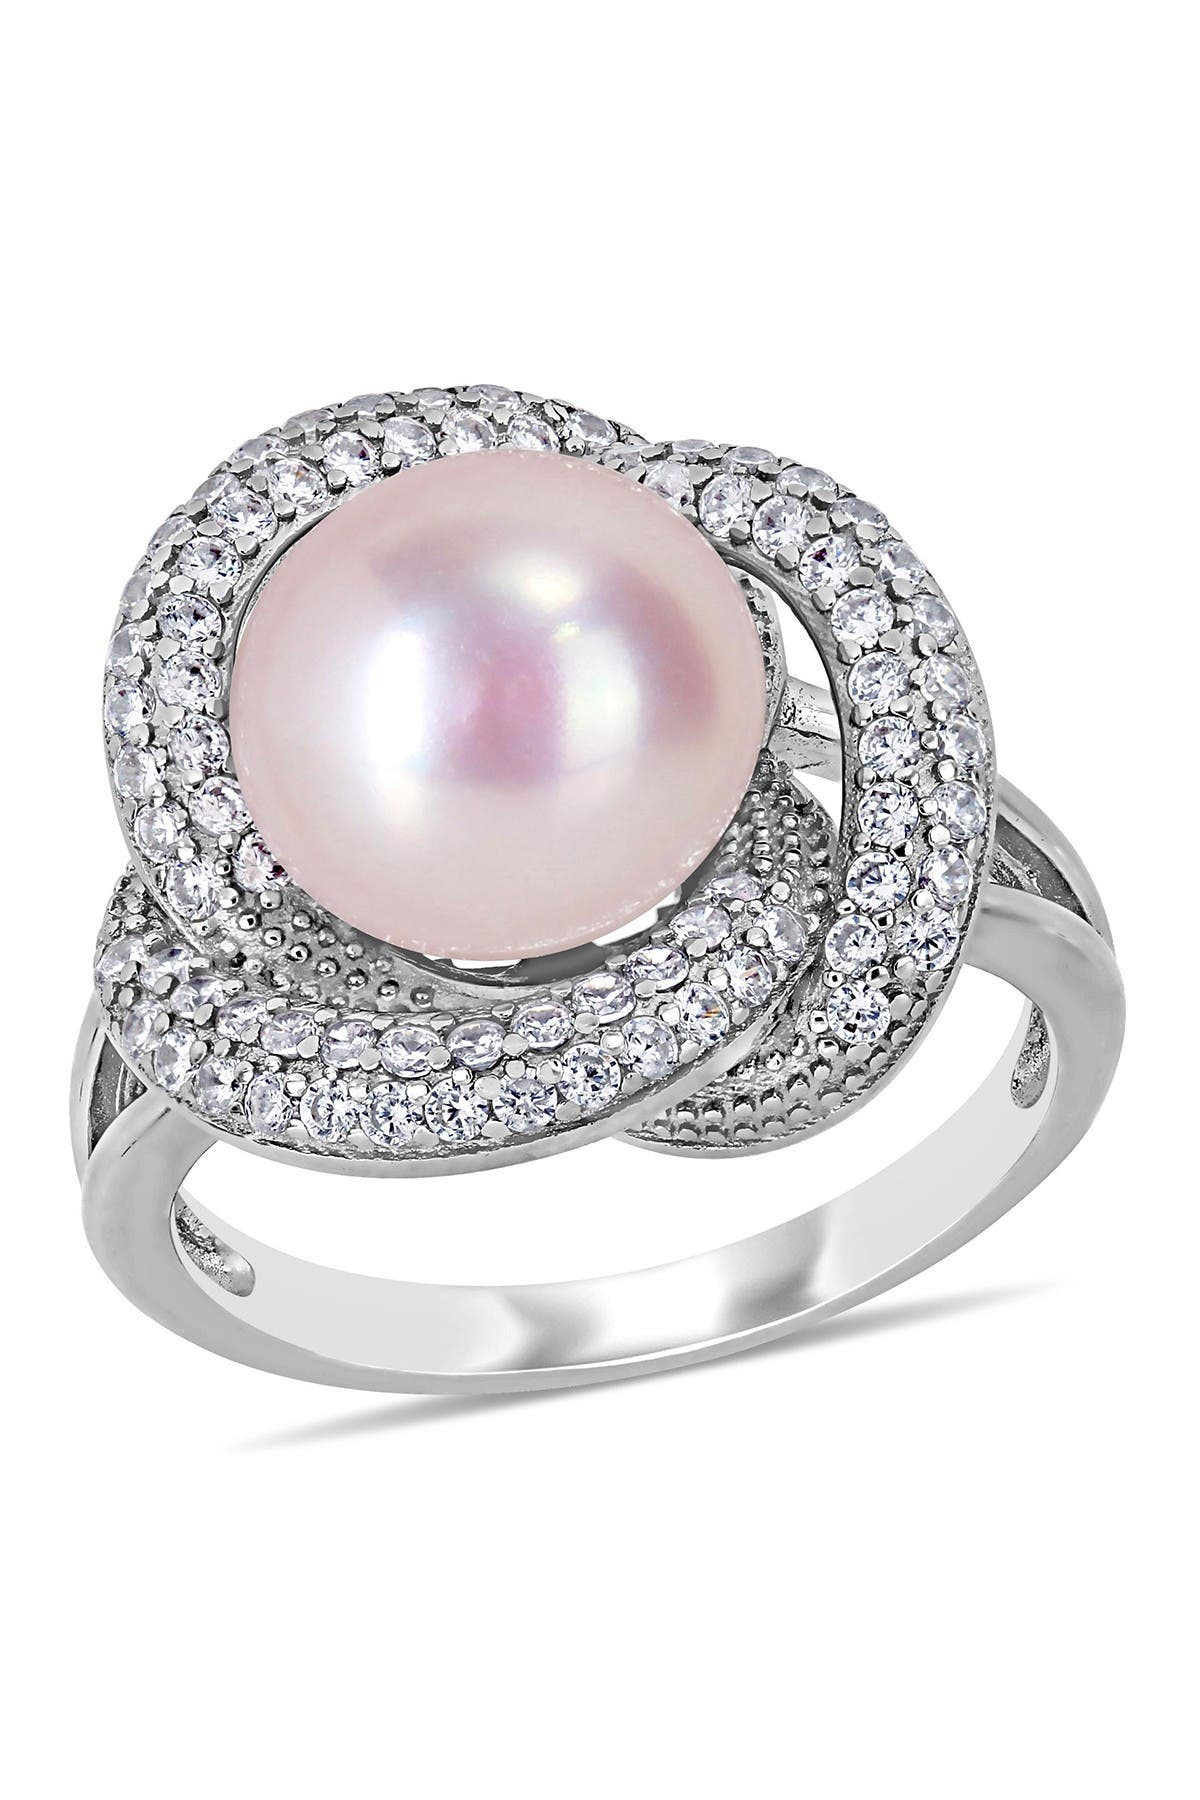 Image of Delmar Sterling Silver 10.5-11mm Pink Freshwater Cultured Pearl & CZ Fashion Ring